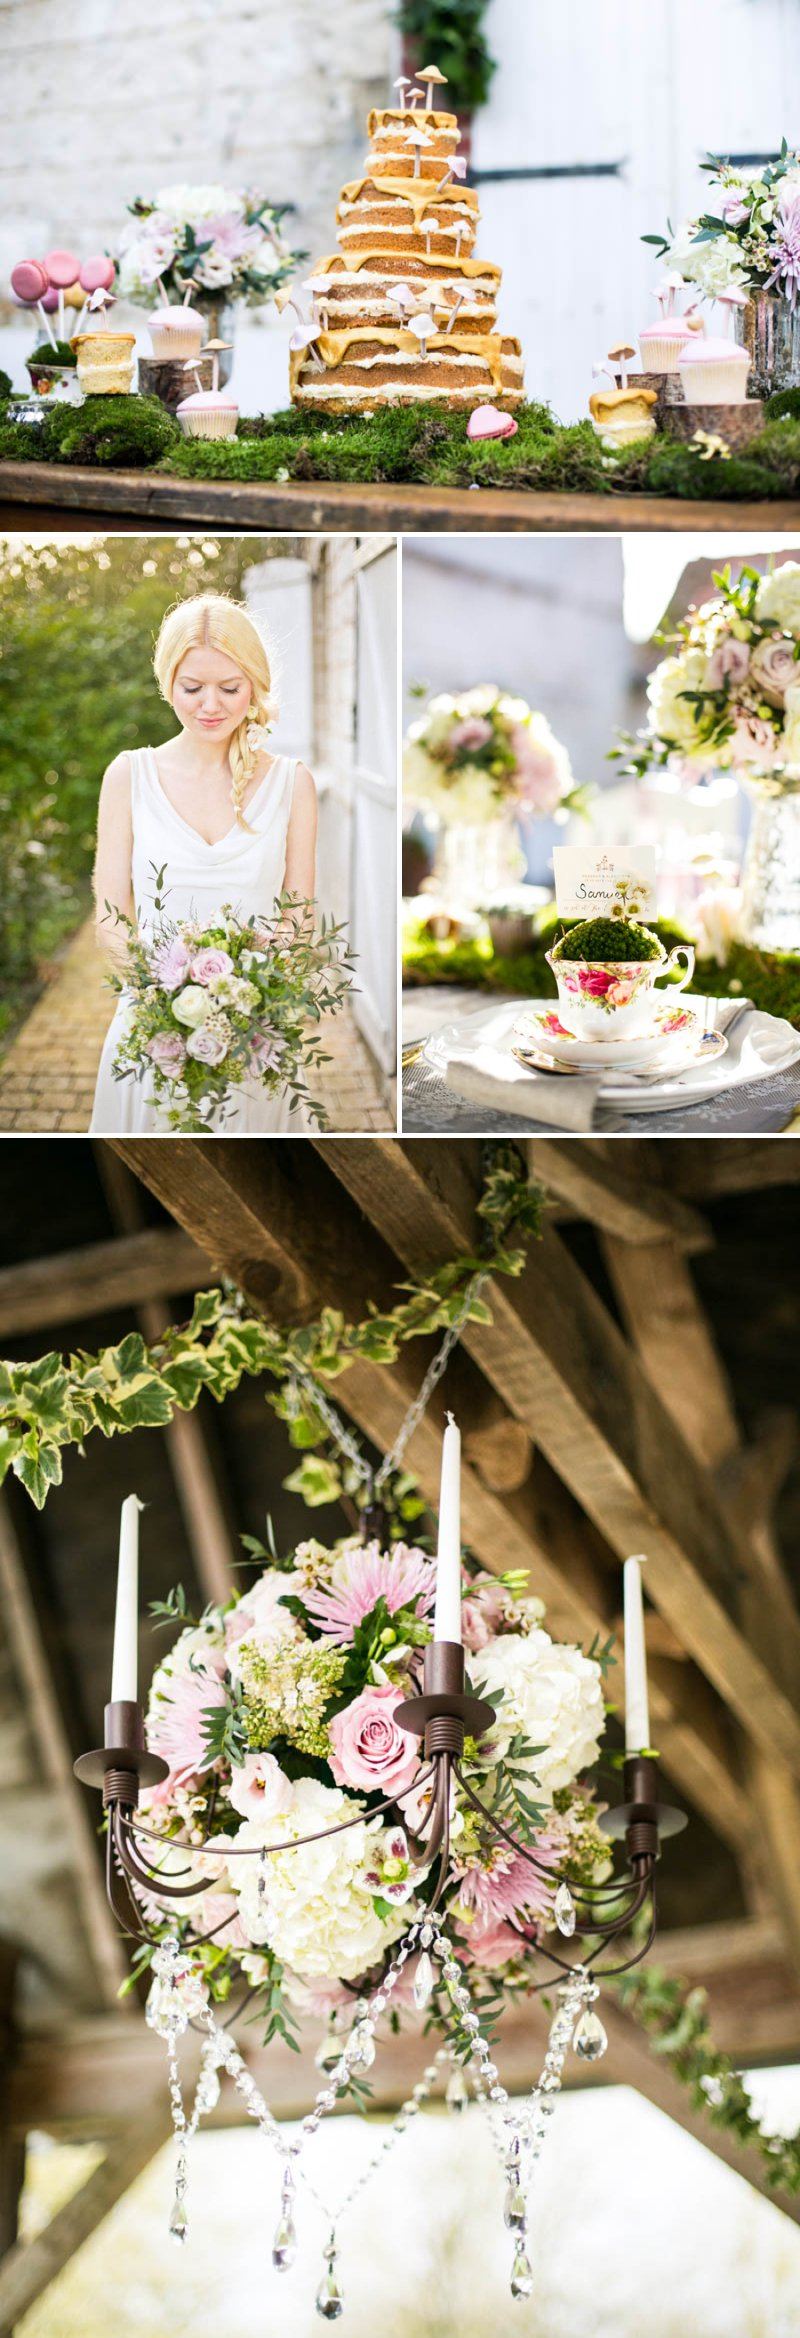 A Romantic And Whimsical Bridal Inspiration Shoot With Johanna Hehir Gowns And Victoria Millesime Accessories With Stationery By Artcadia And Flowers By Boutique Blooms Images From Anneli Marinovich 11 A French Forest Fairytale.